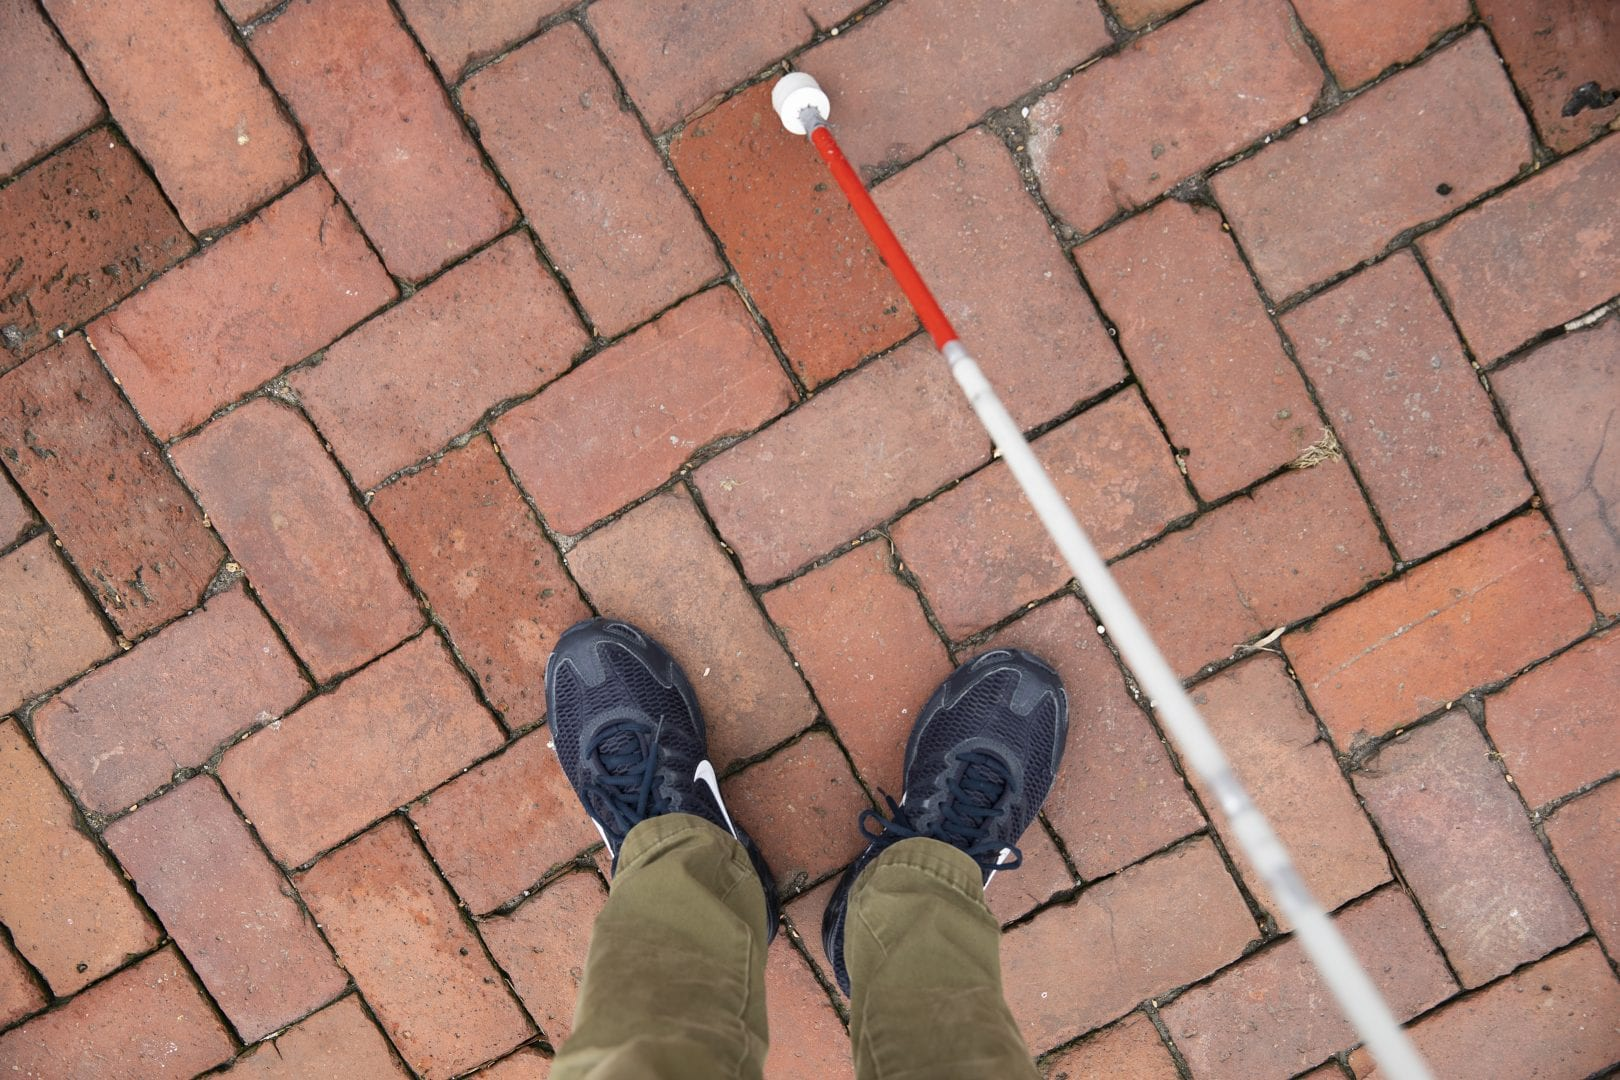 birds eye view of someone standing on a brick path with a white cane